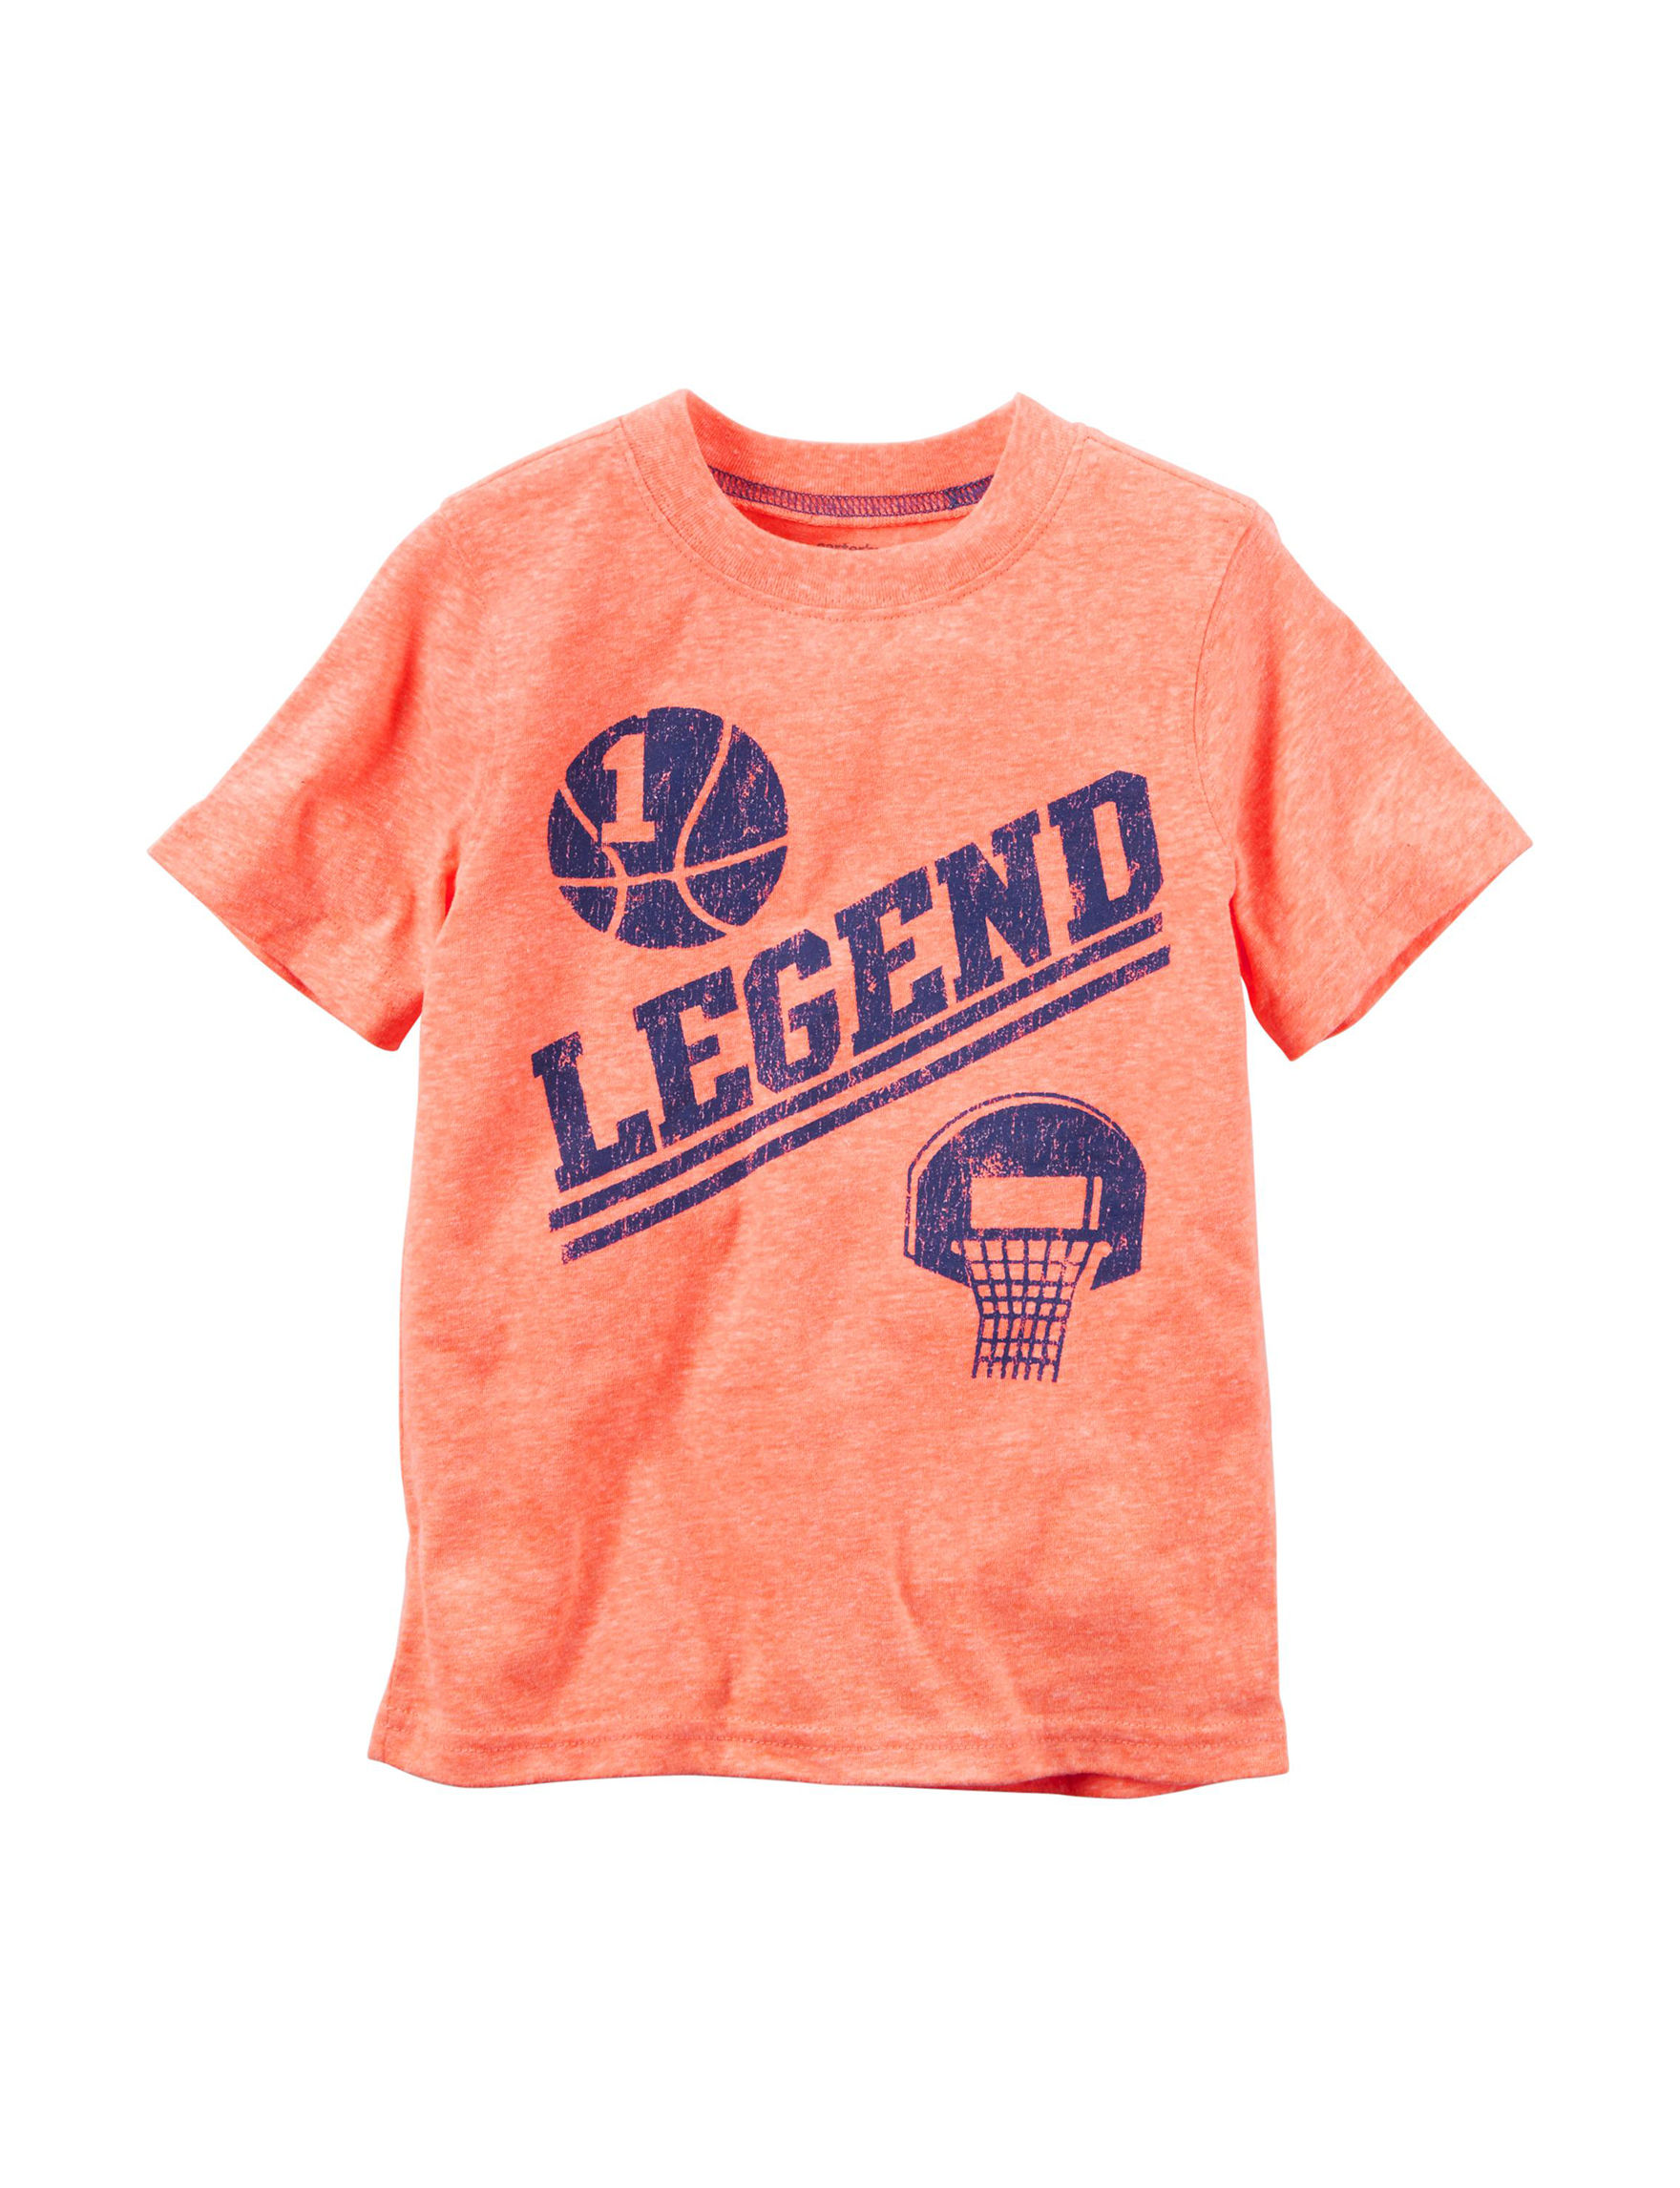 Carter's Orange Heather Tees & Tanks